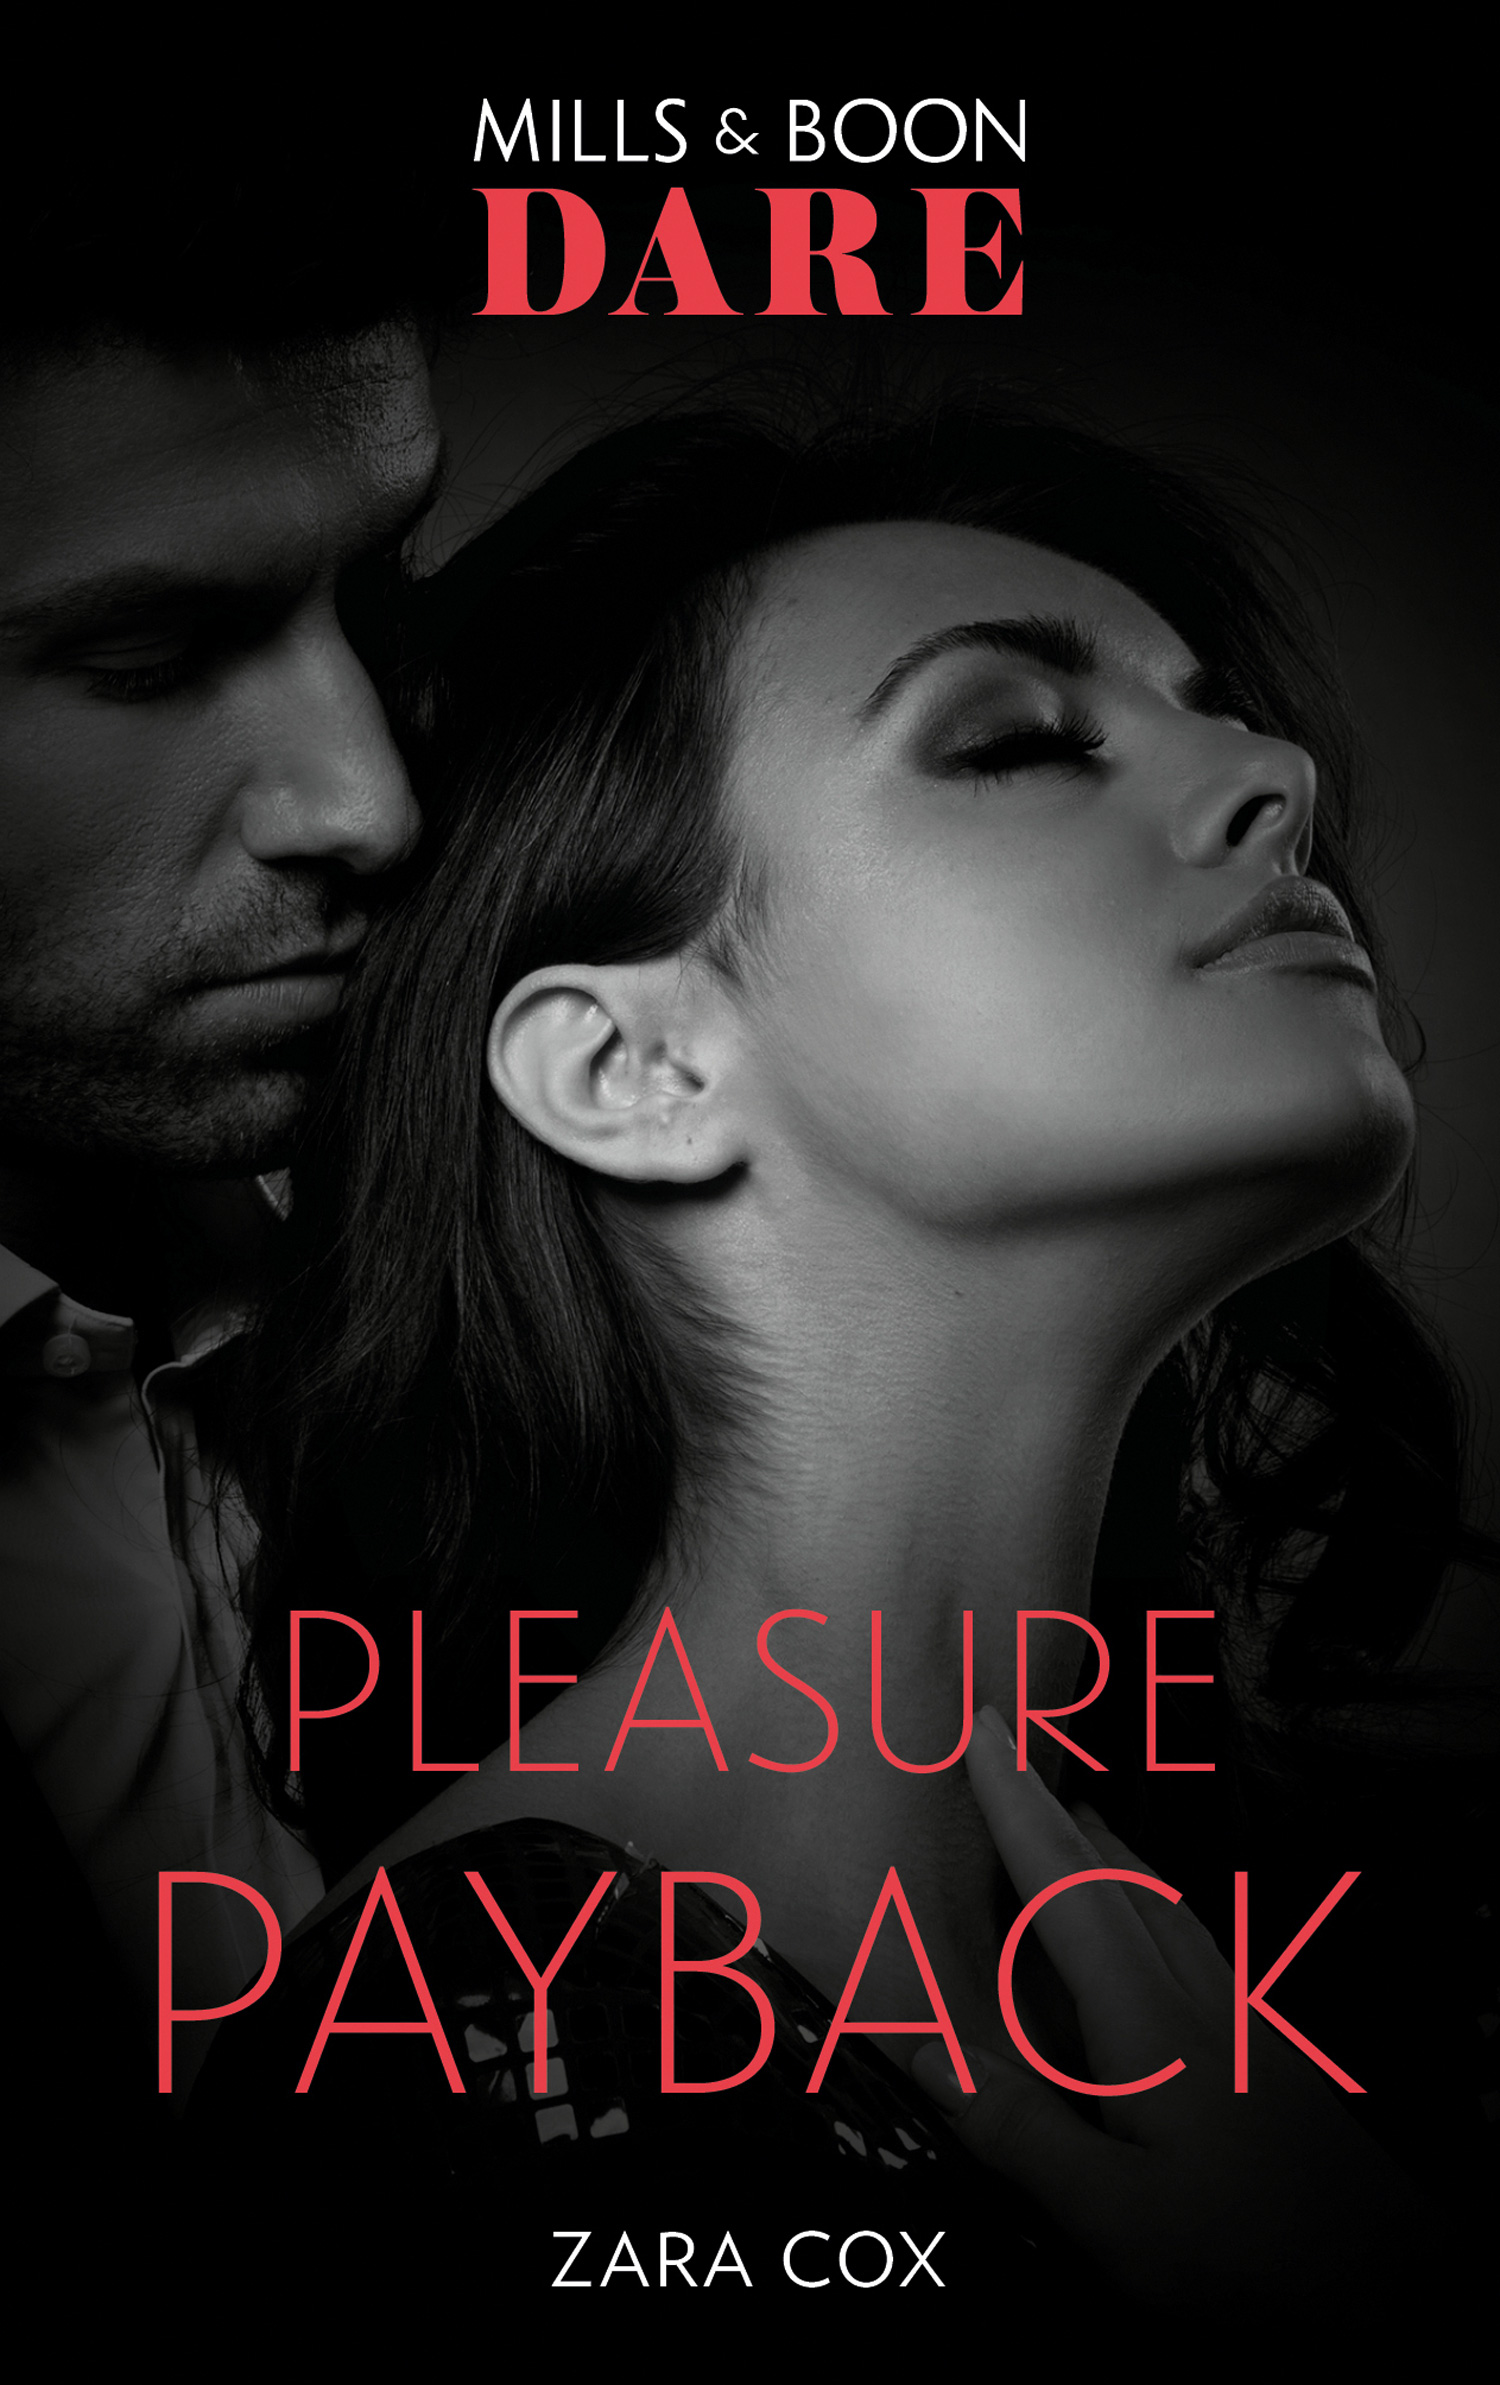 Pleasure Payback